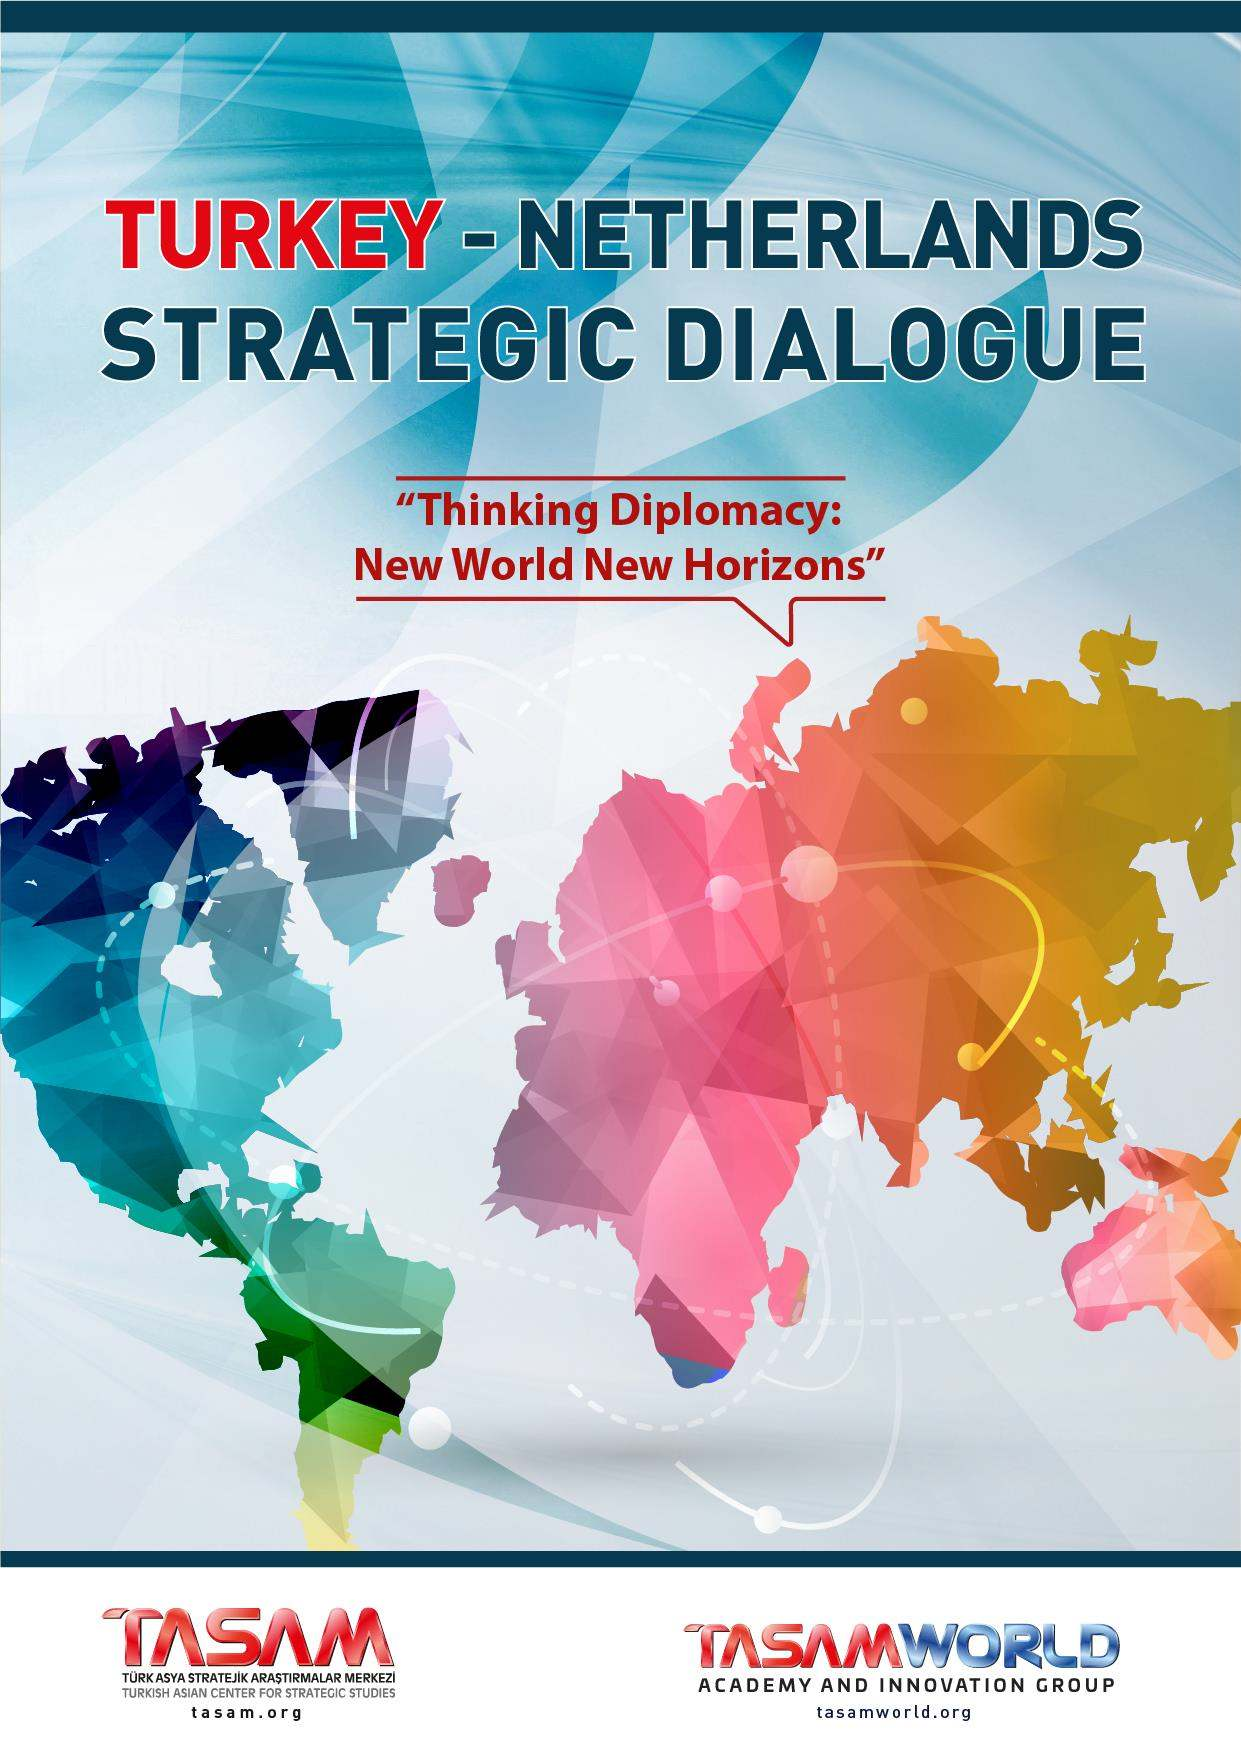 Turkey - Netherlands Strategic Dialogue